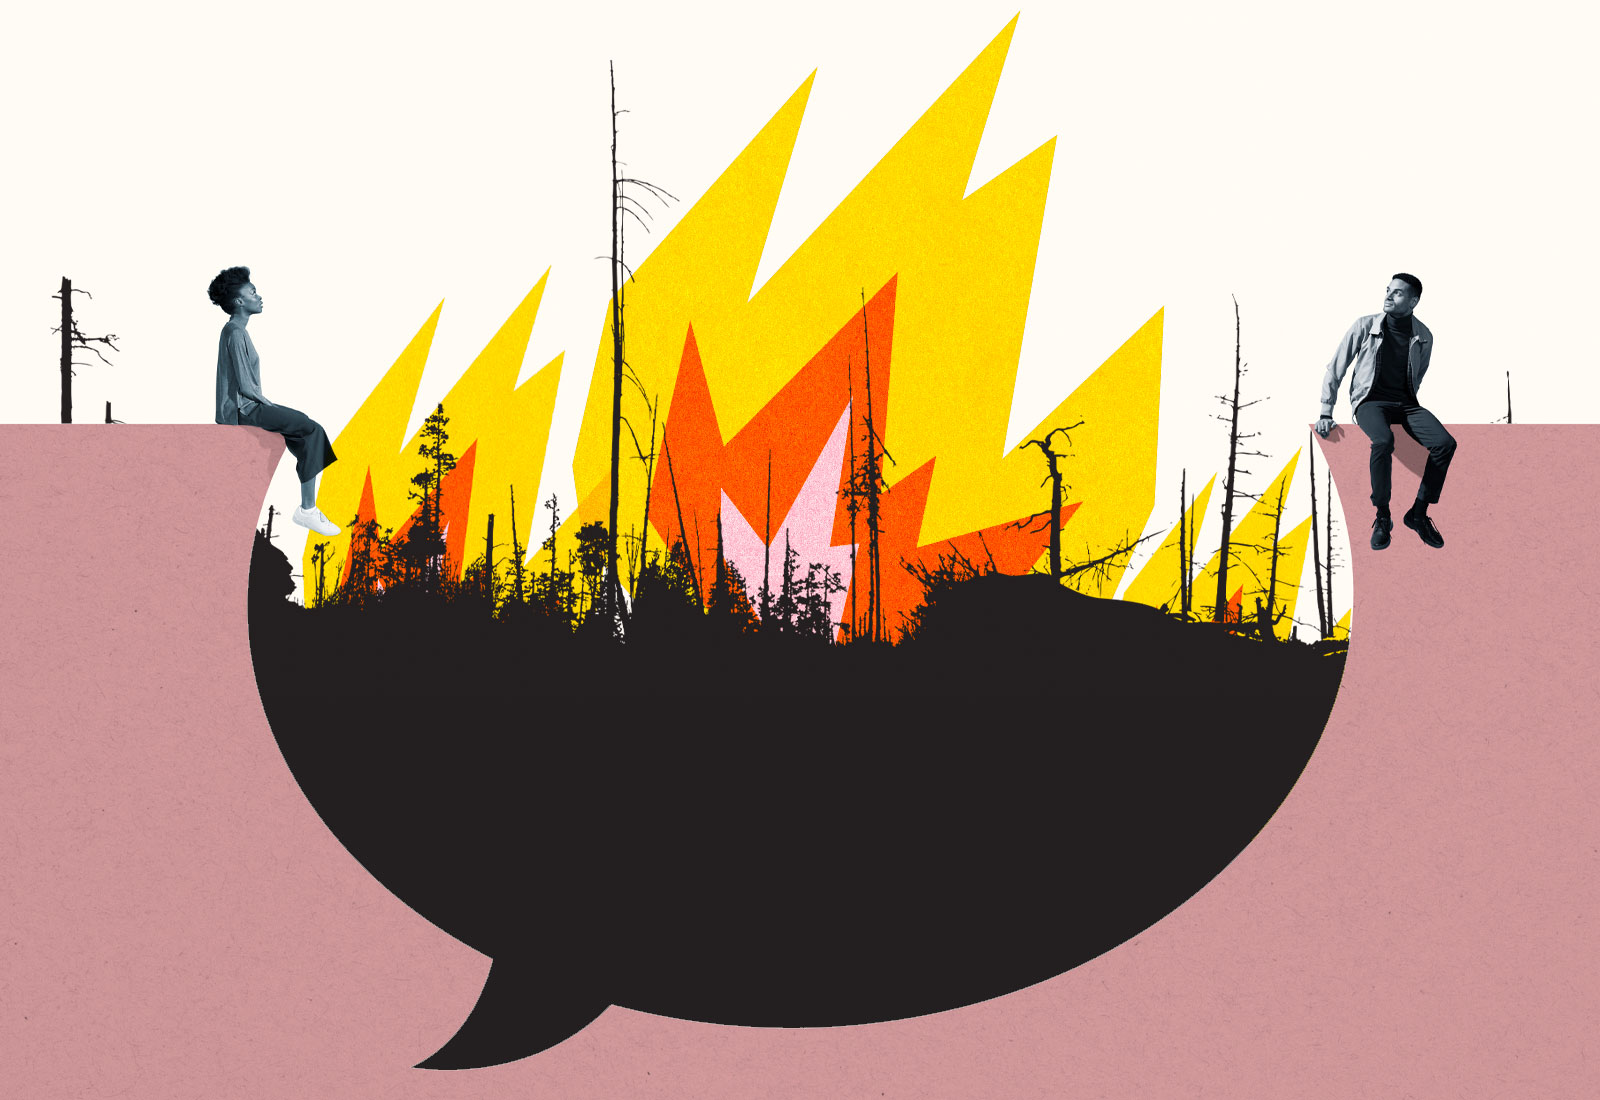 Collage: A woman and man sitting on top of a speech bubble shape with a wildfire in the background